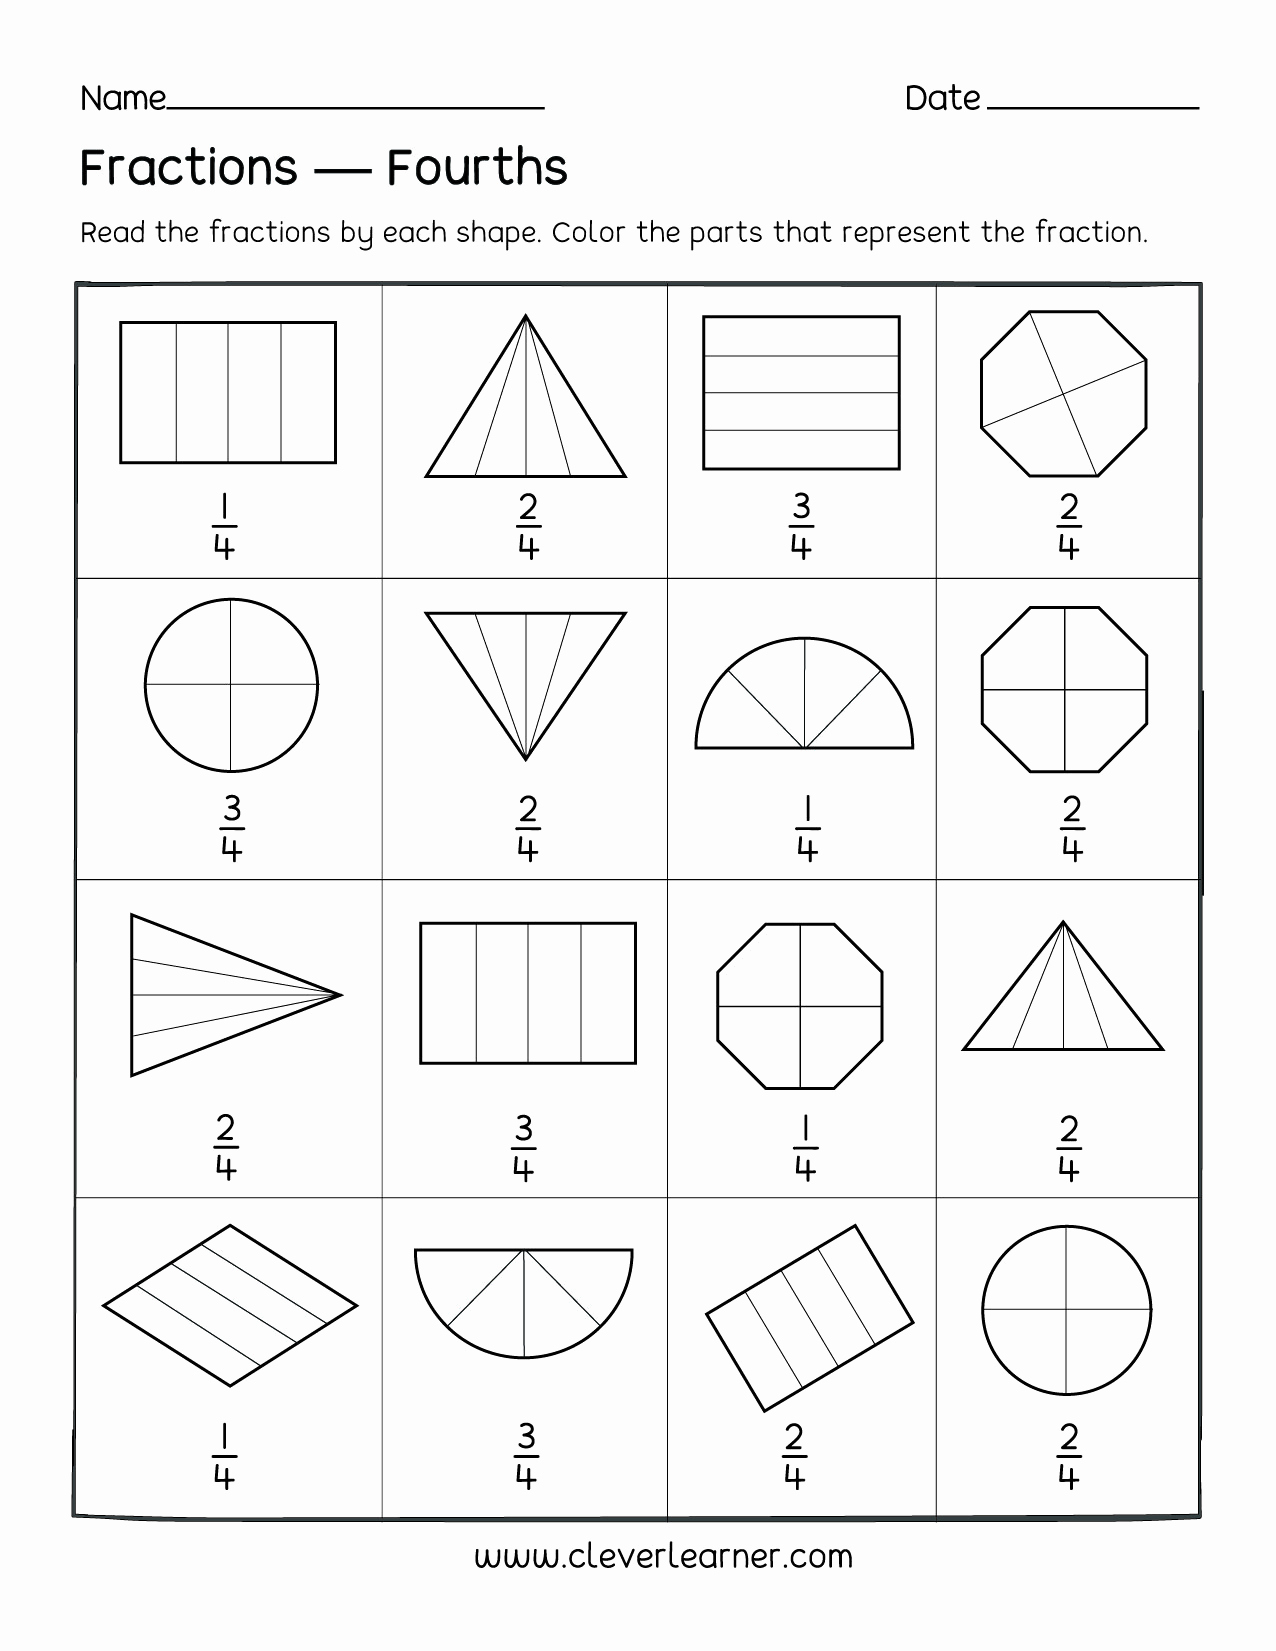 Fractions Worksheets First Grade Fresh Fun Activity On Fractions Fourths Worksheets for Children